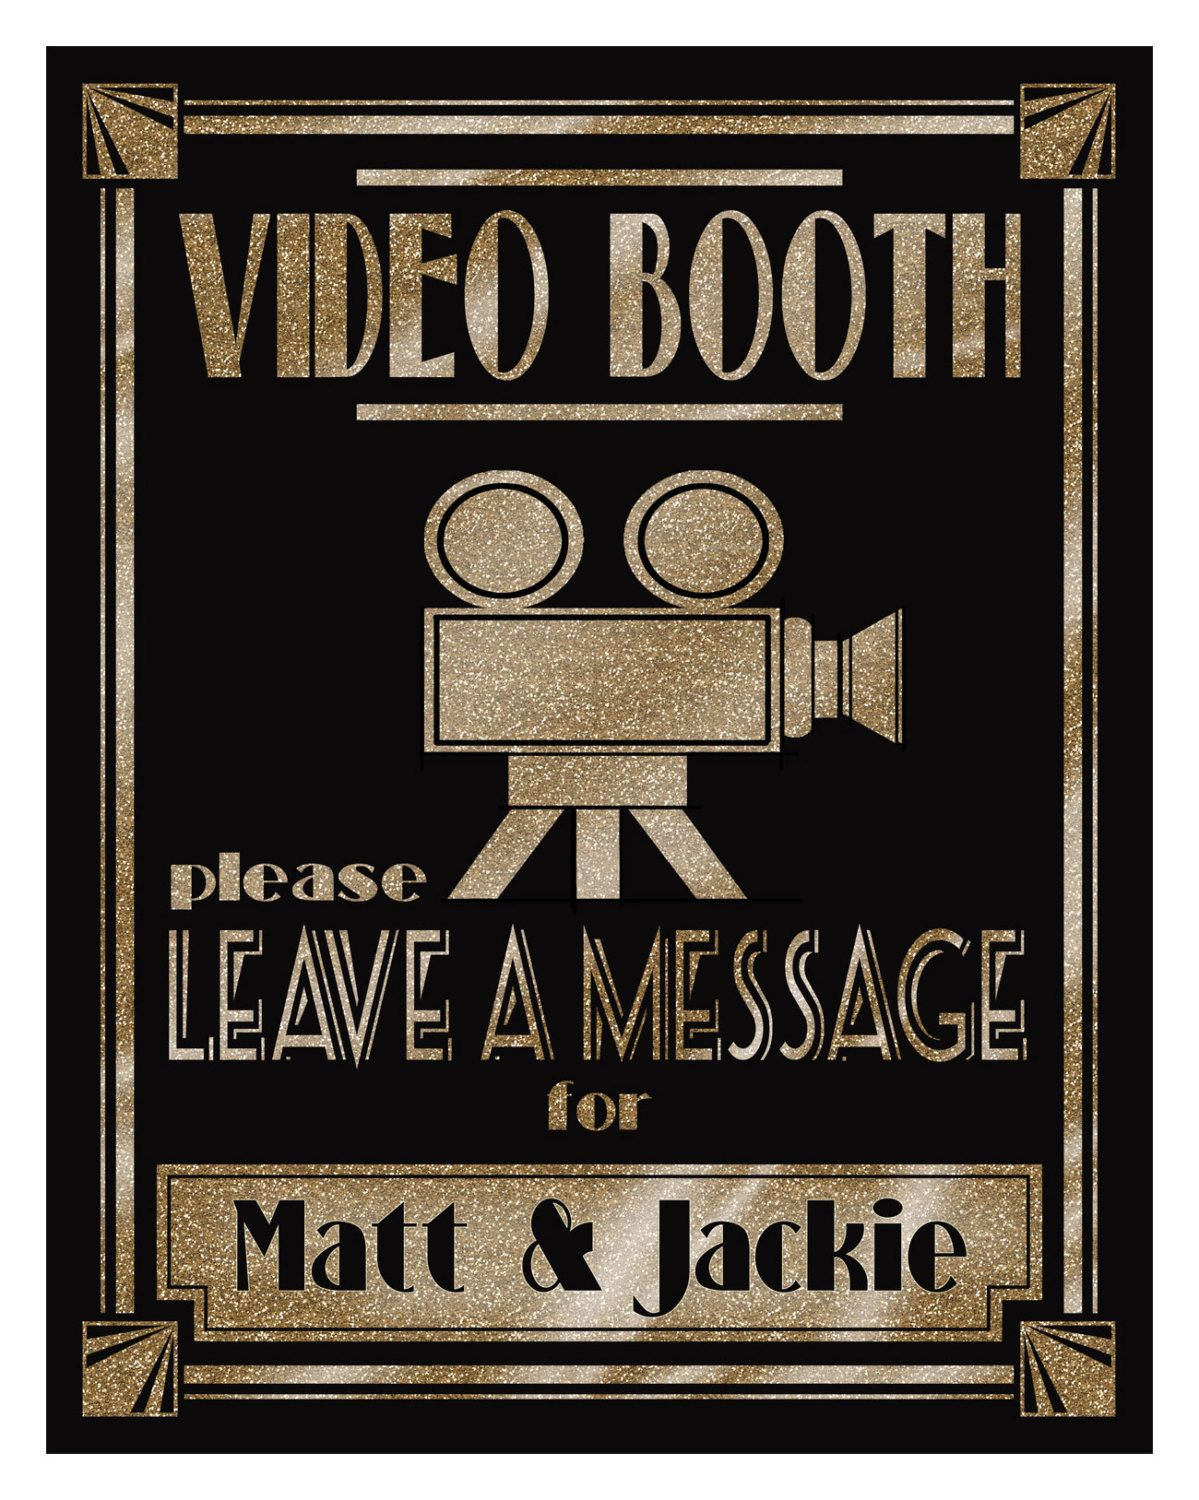 Personalized Video Booth Sign Printable 1920 S Wedding Etsy In 2020 Video Booth Sign Video Booth Printable Personalized